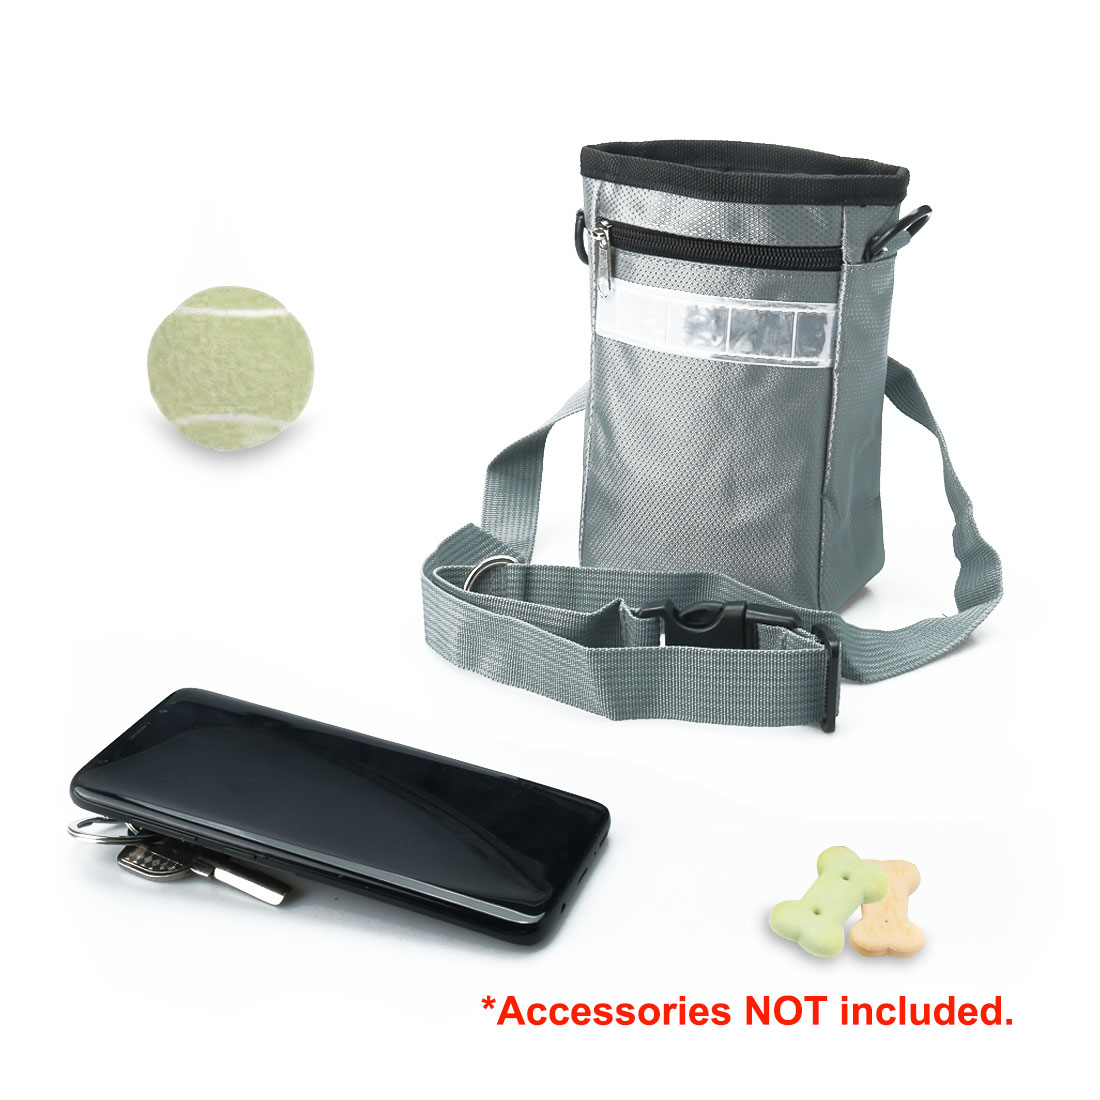 Dog Training Pouch Pet Training Accessory Holder Easily Carries Pet Toy With Adjustable Straps Black